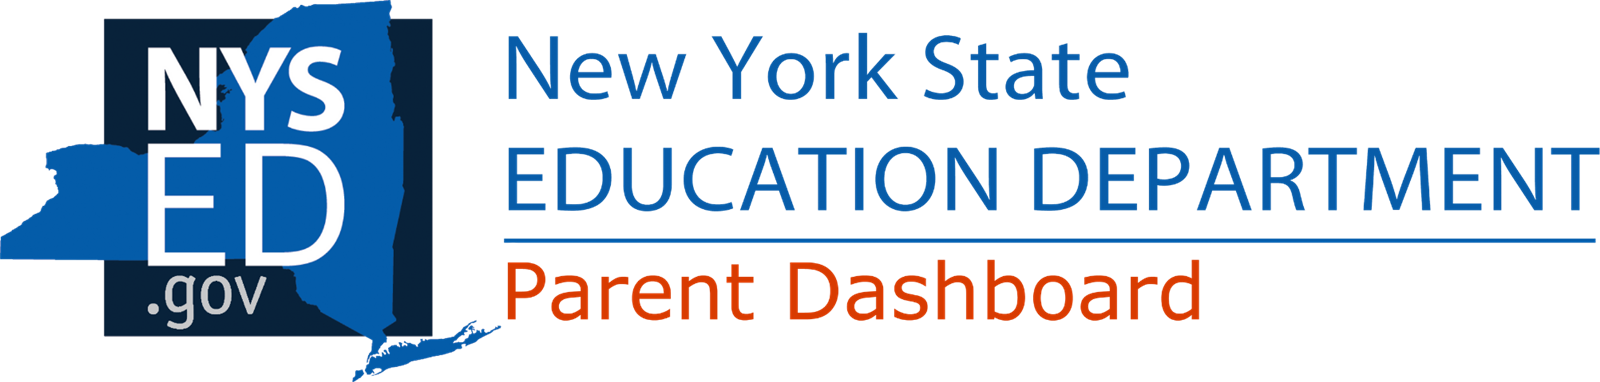 NYSED Parent Dashboard Logo